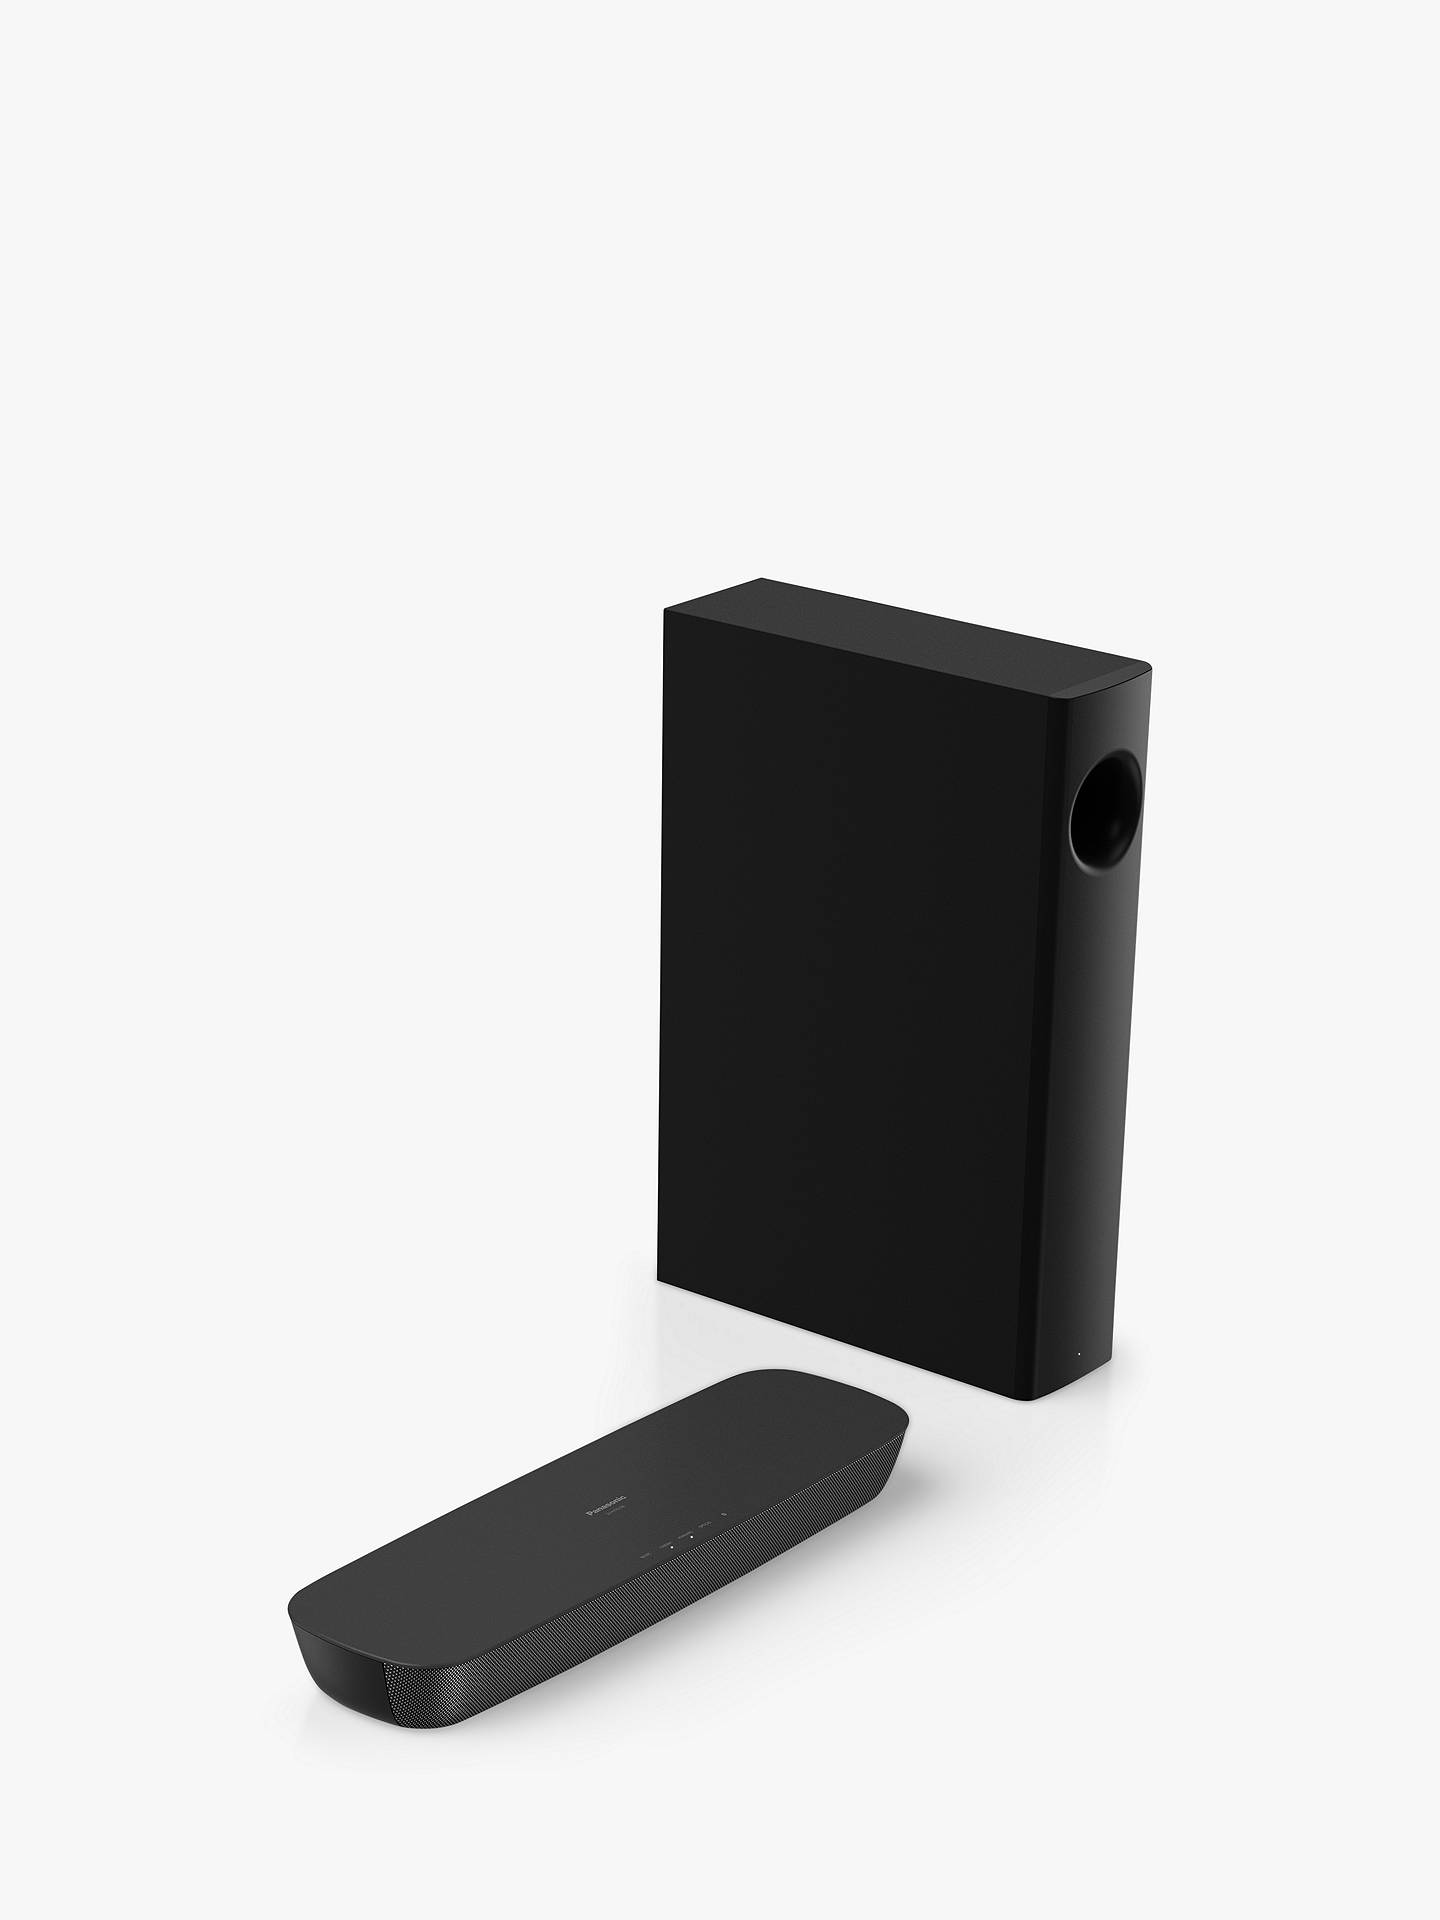 BuyPanasonic SC-HTB258 Bluetooth Sound Bar with Wireless Subwoofer Online at johnlewis.com